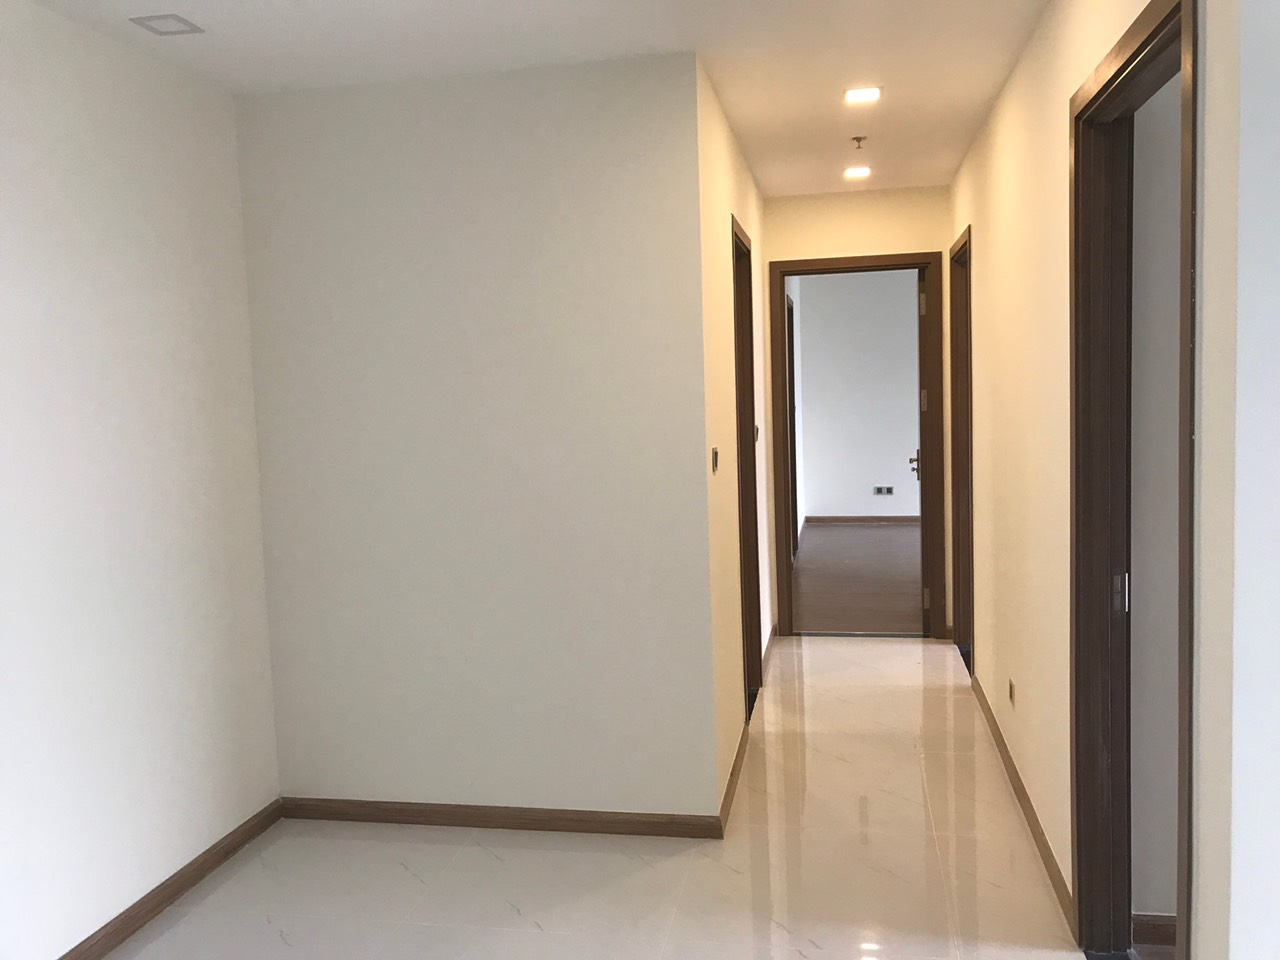 vinhomes central park apartment for rent in binh thanh district hcmc BT105P3673 (13)